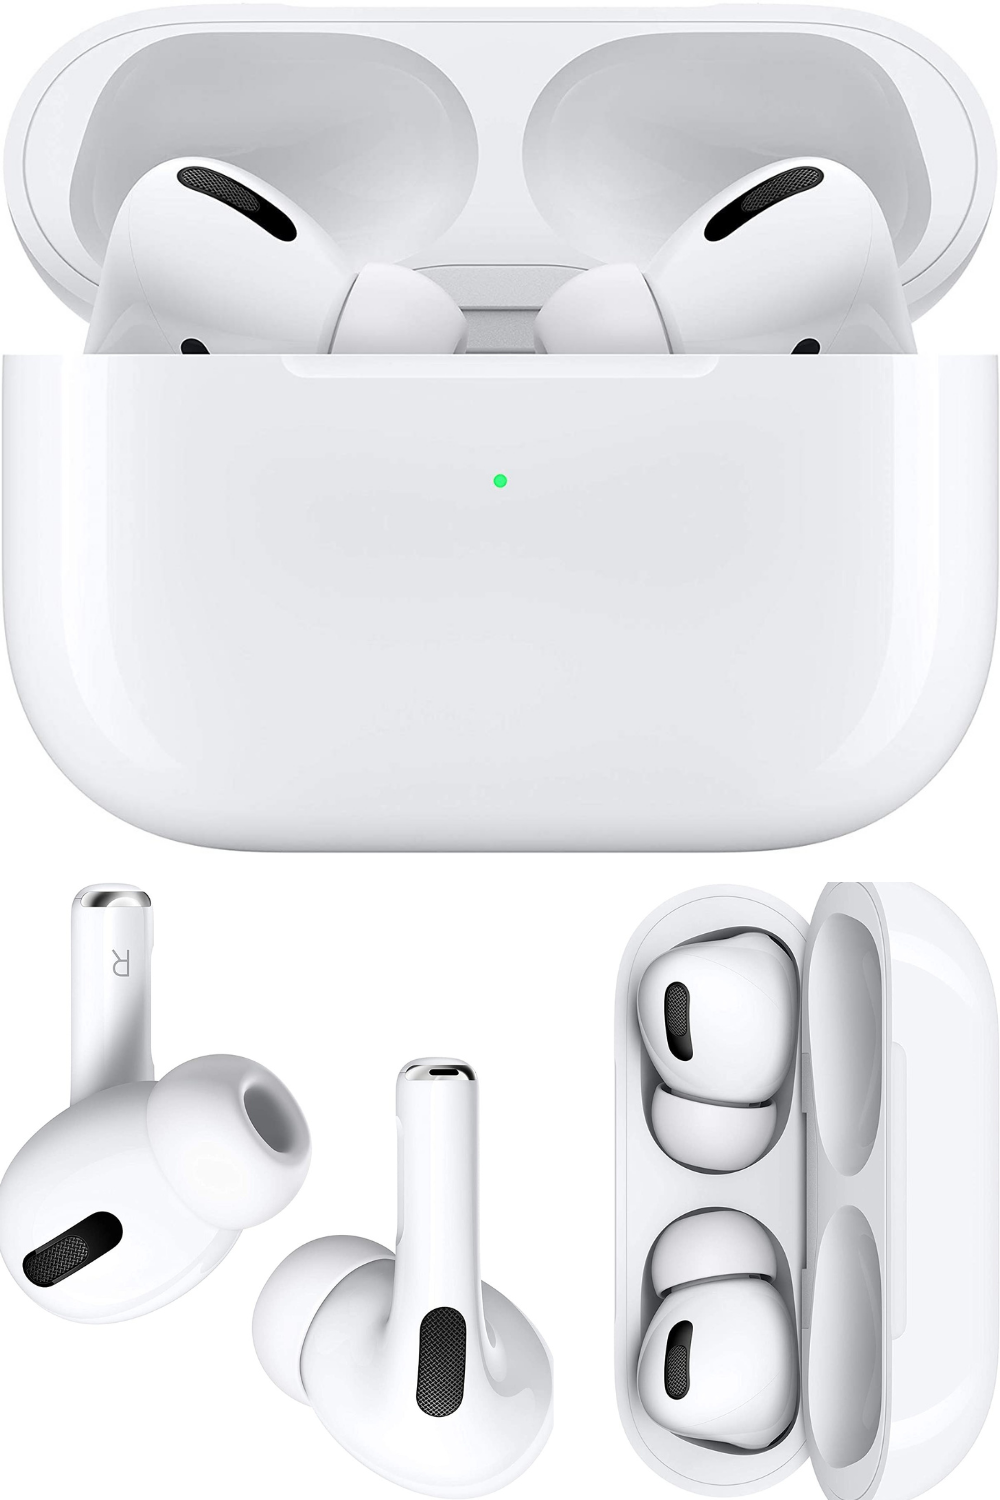 Apple Airpods Pro From Amazon Custom Computer Case Computer Gifts Cases Diy